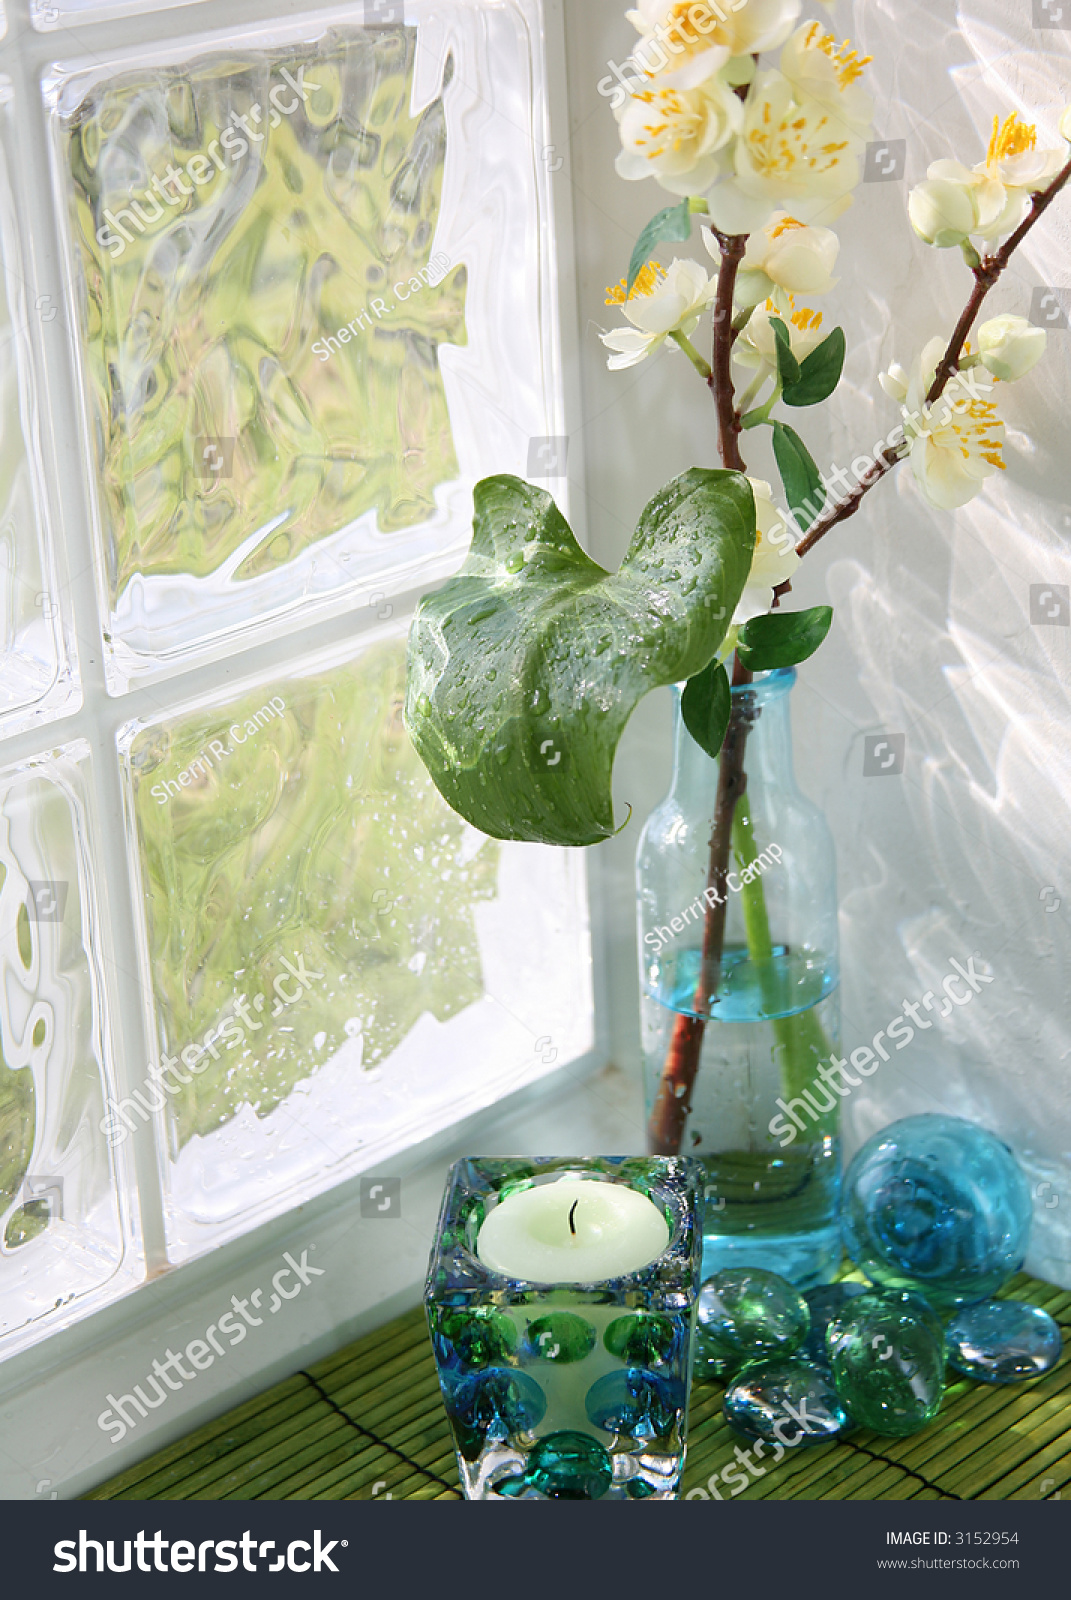 Candle and vase with apple blossoms on glass block window for Glass block r value